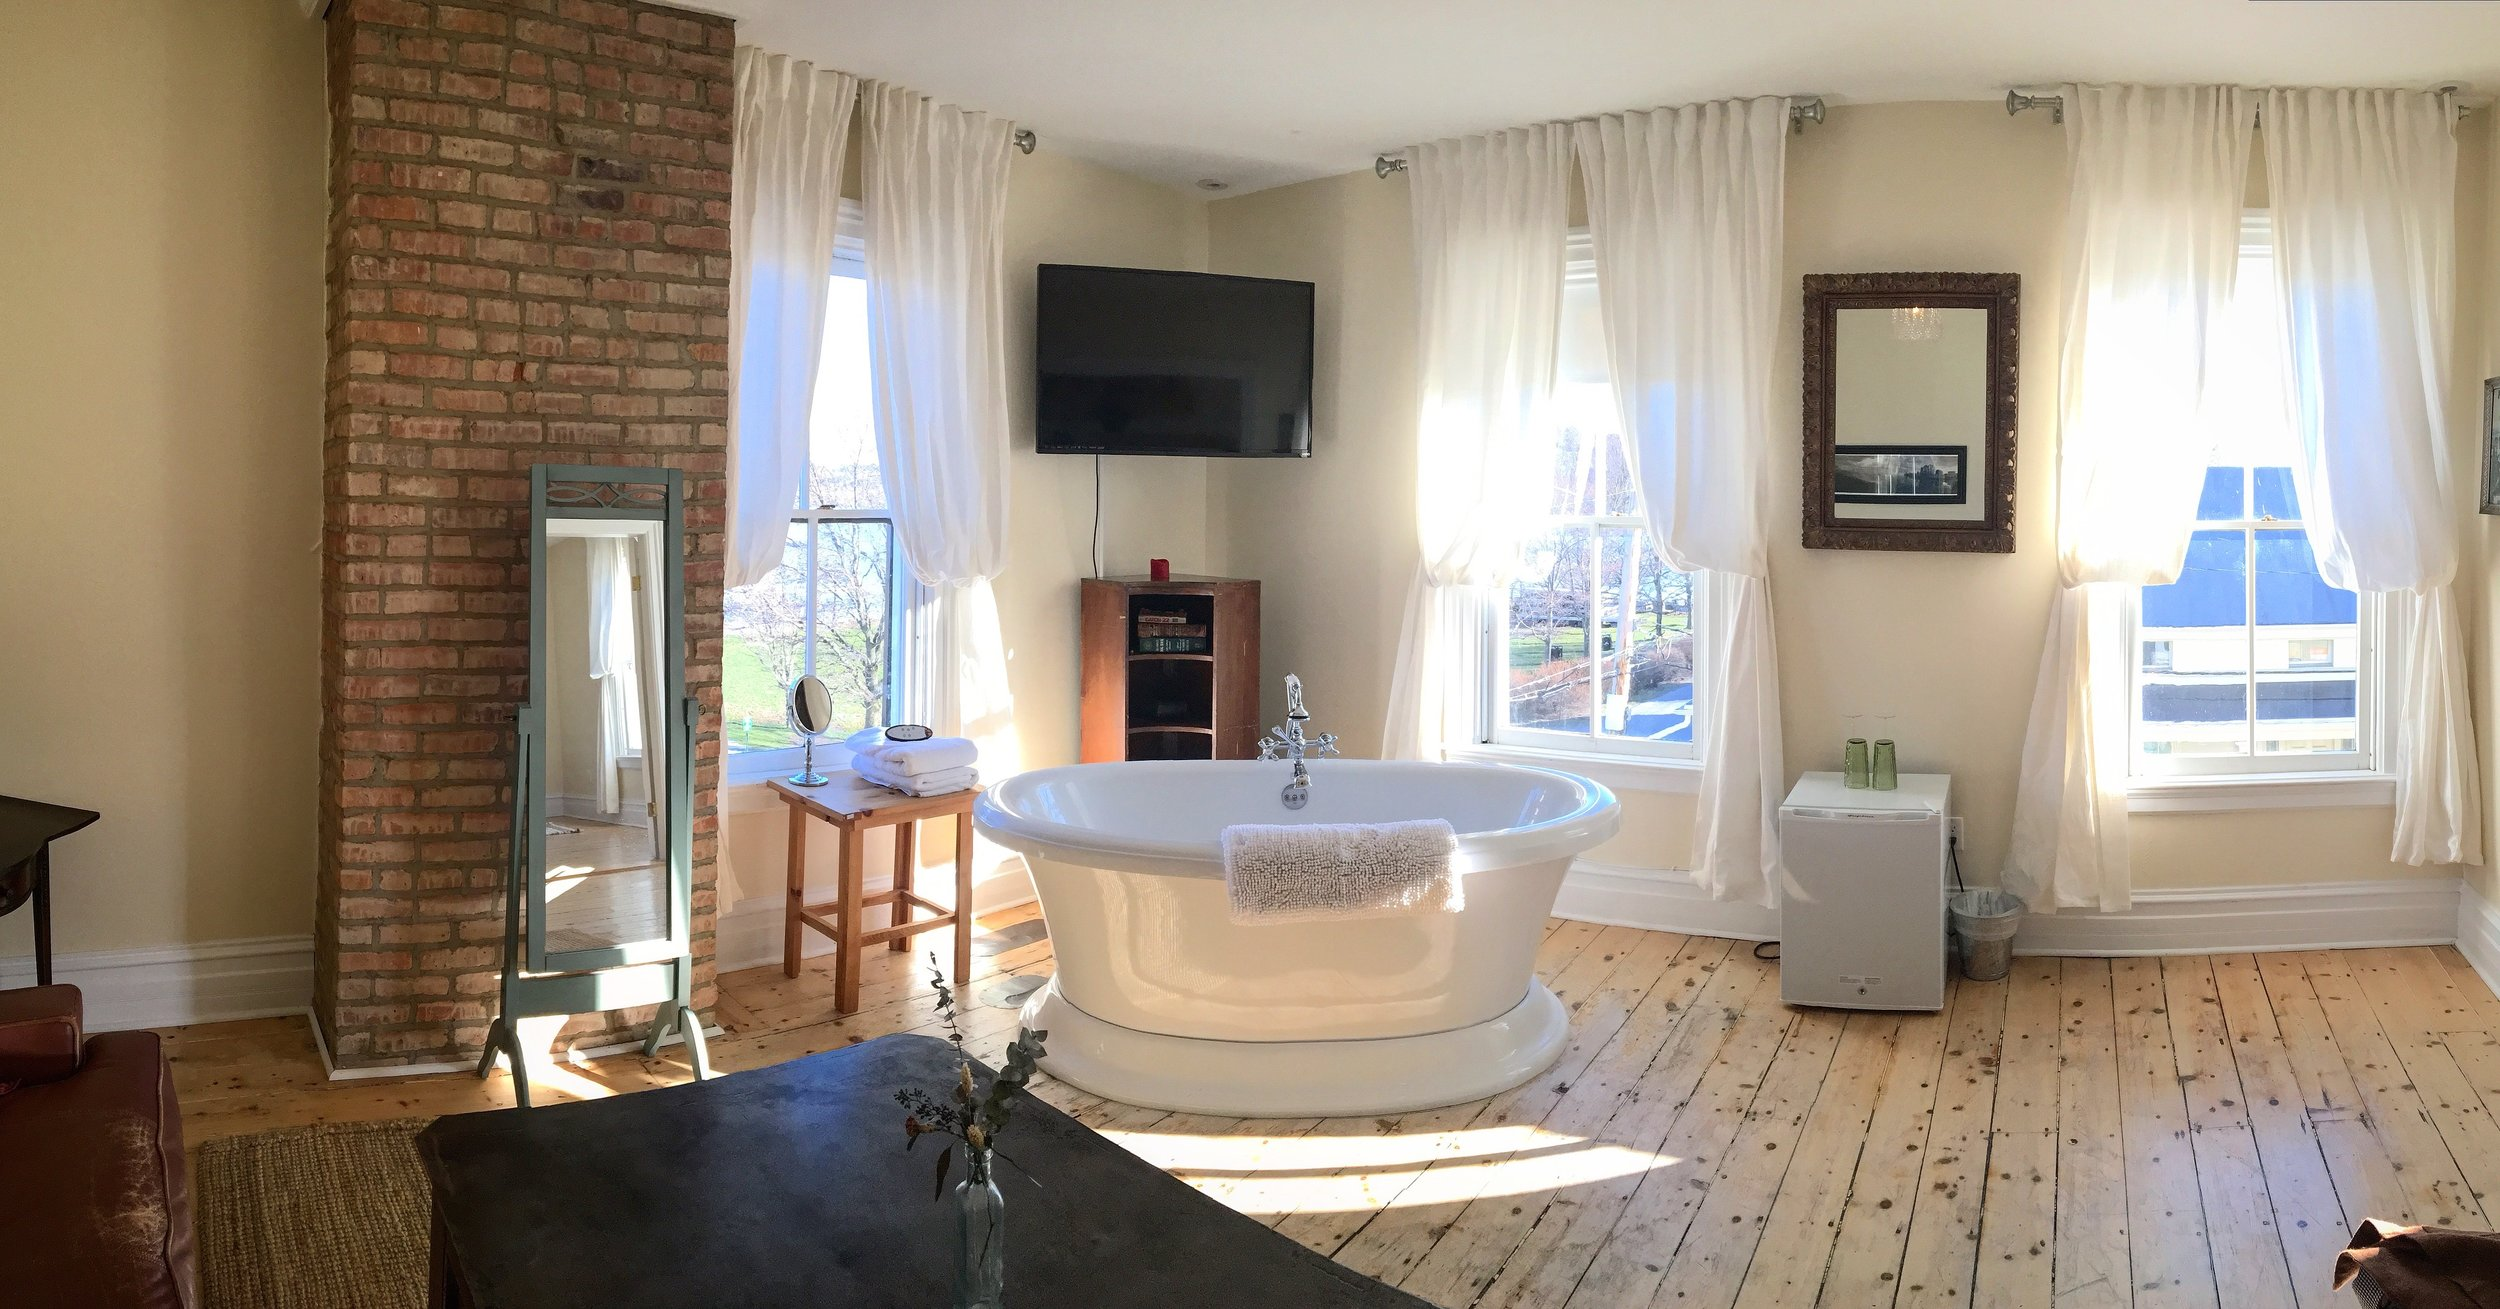 Our bedroom suite was an actual dream. A bathtub in the bedroom...